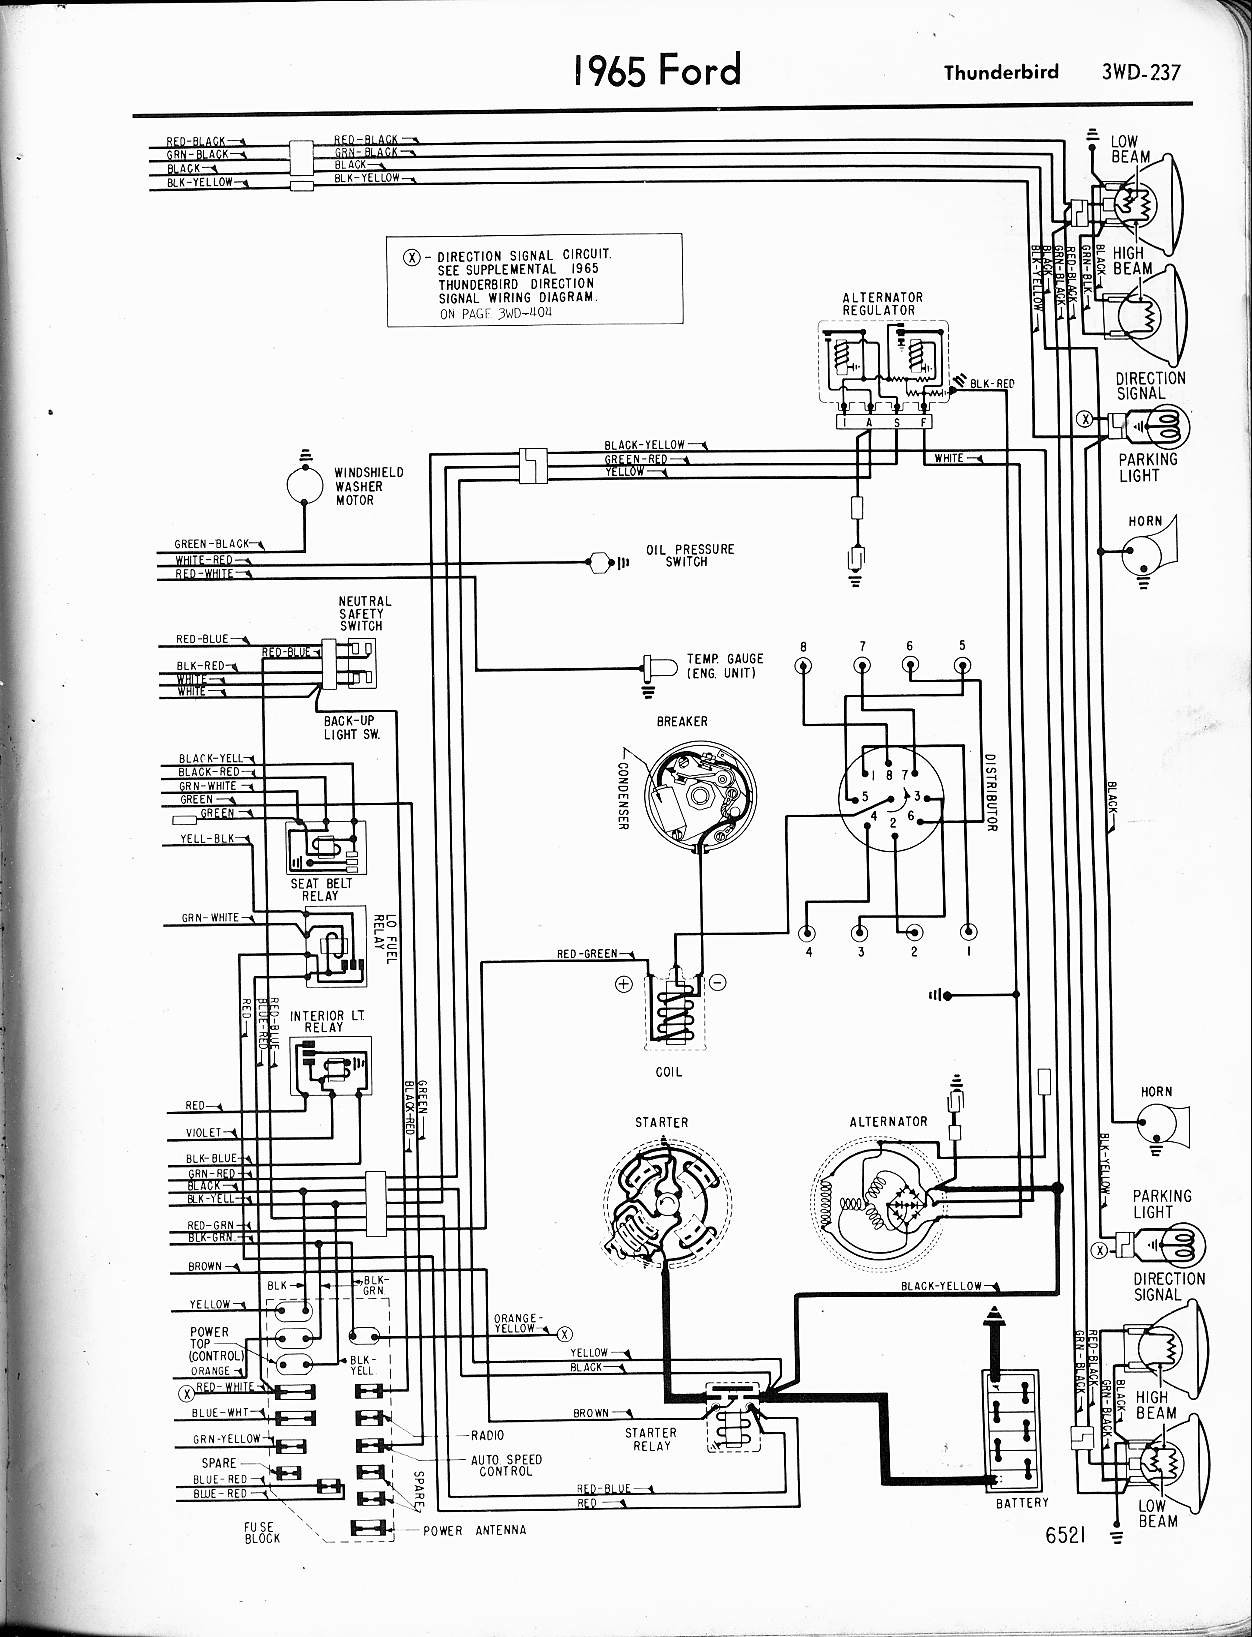 thunderbird alternator wiring diagram on oil circuit breaker rh qualiwood co 1956 Ford Thunderbird Wiring Diagram 1997 Ford Thunderbird Wiring Diagram